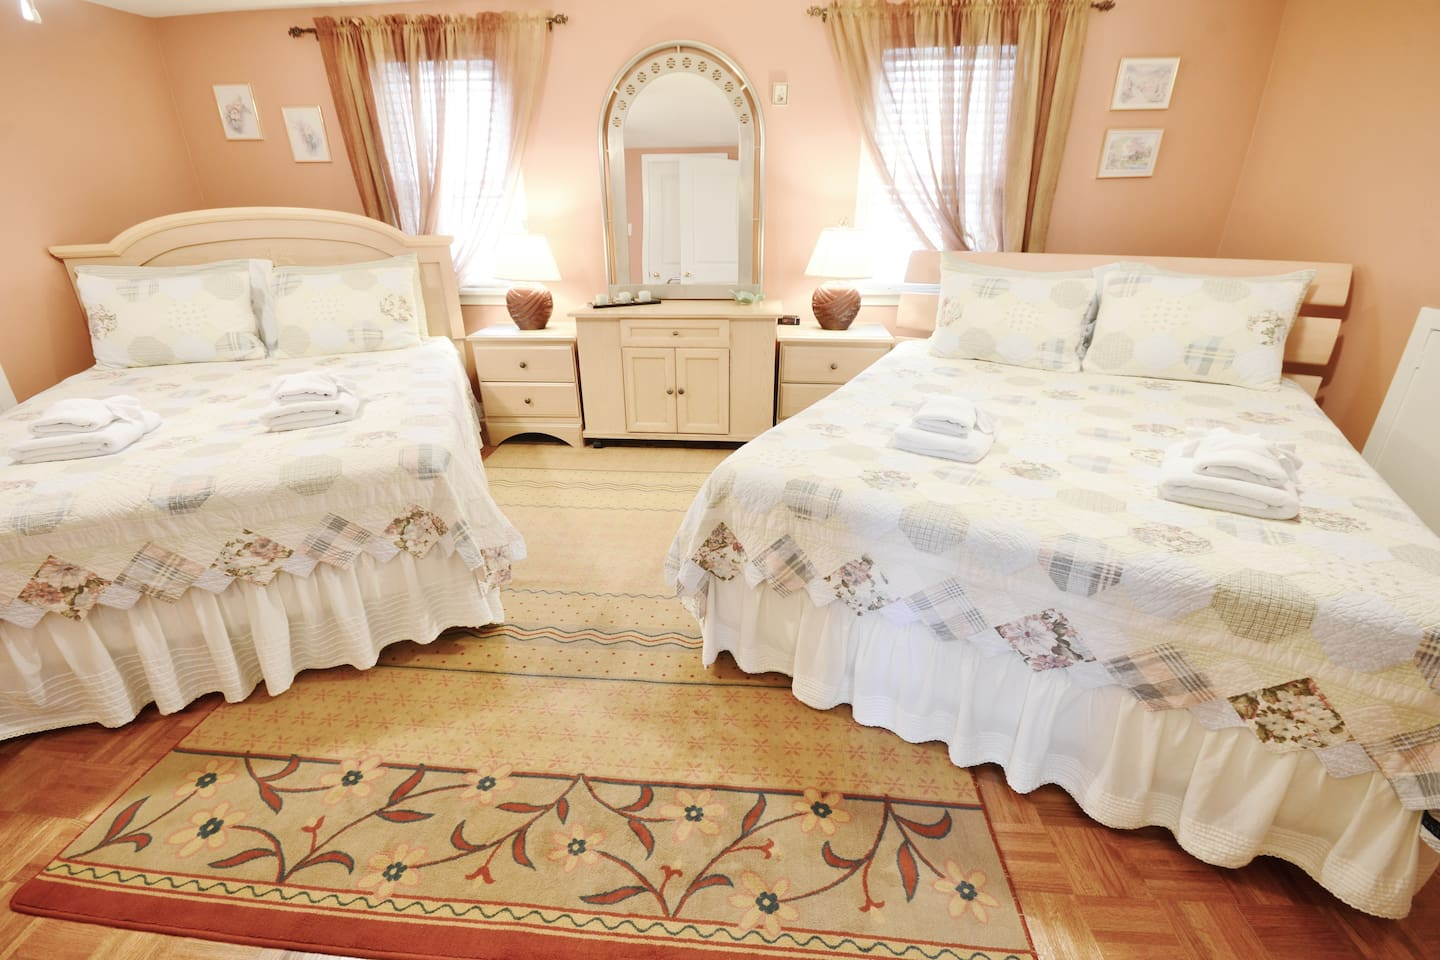 Second Floor Suite - Large Bedroom with two queen beds